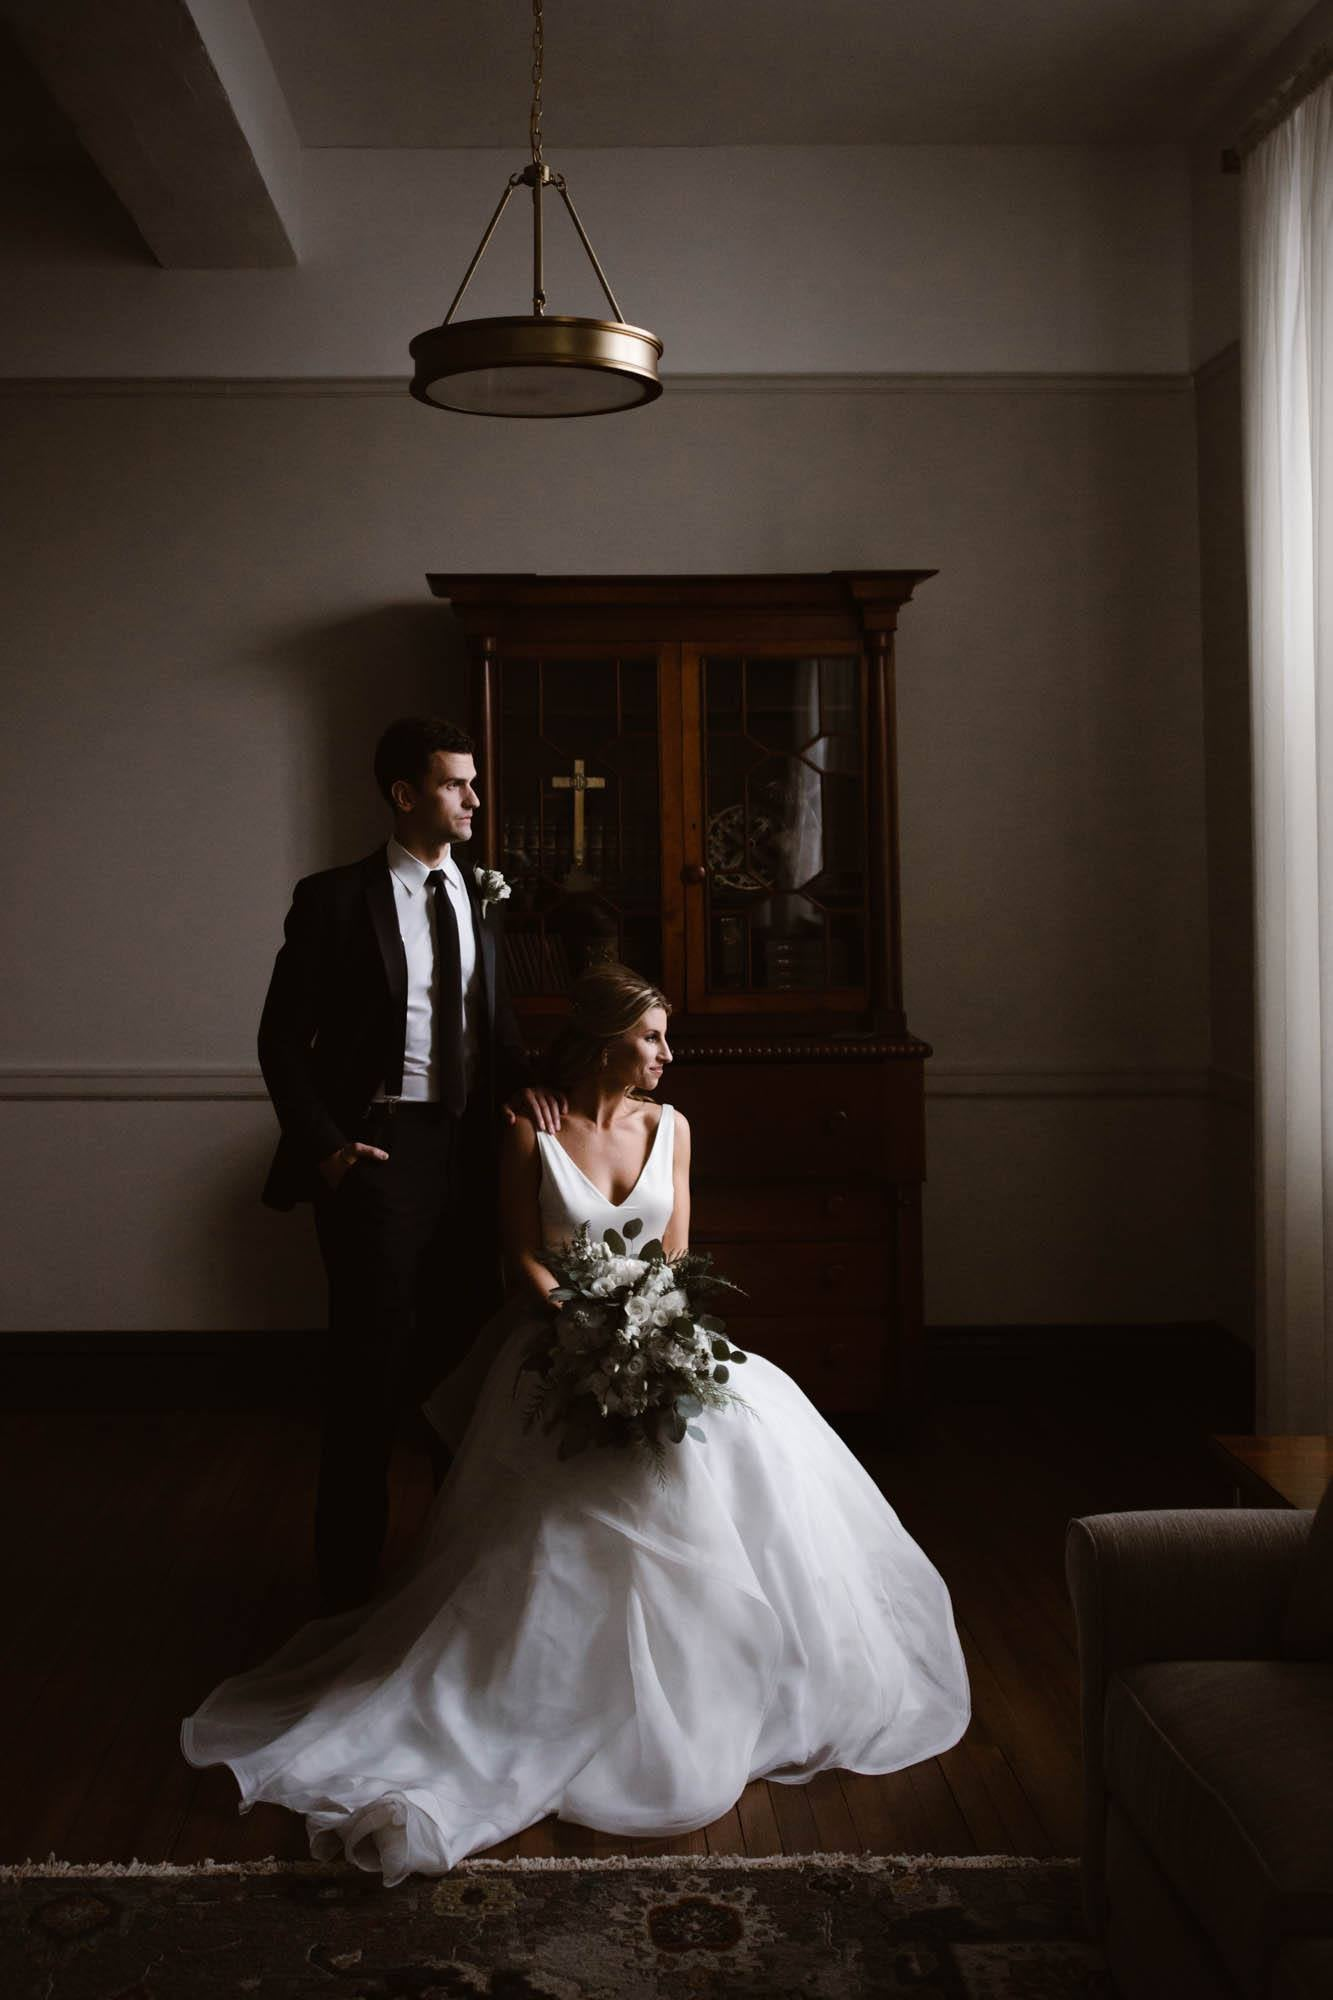 A bride and groom posing while sitting on a chair that is placed in front of a window